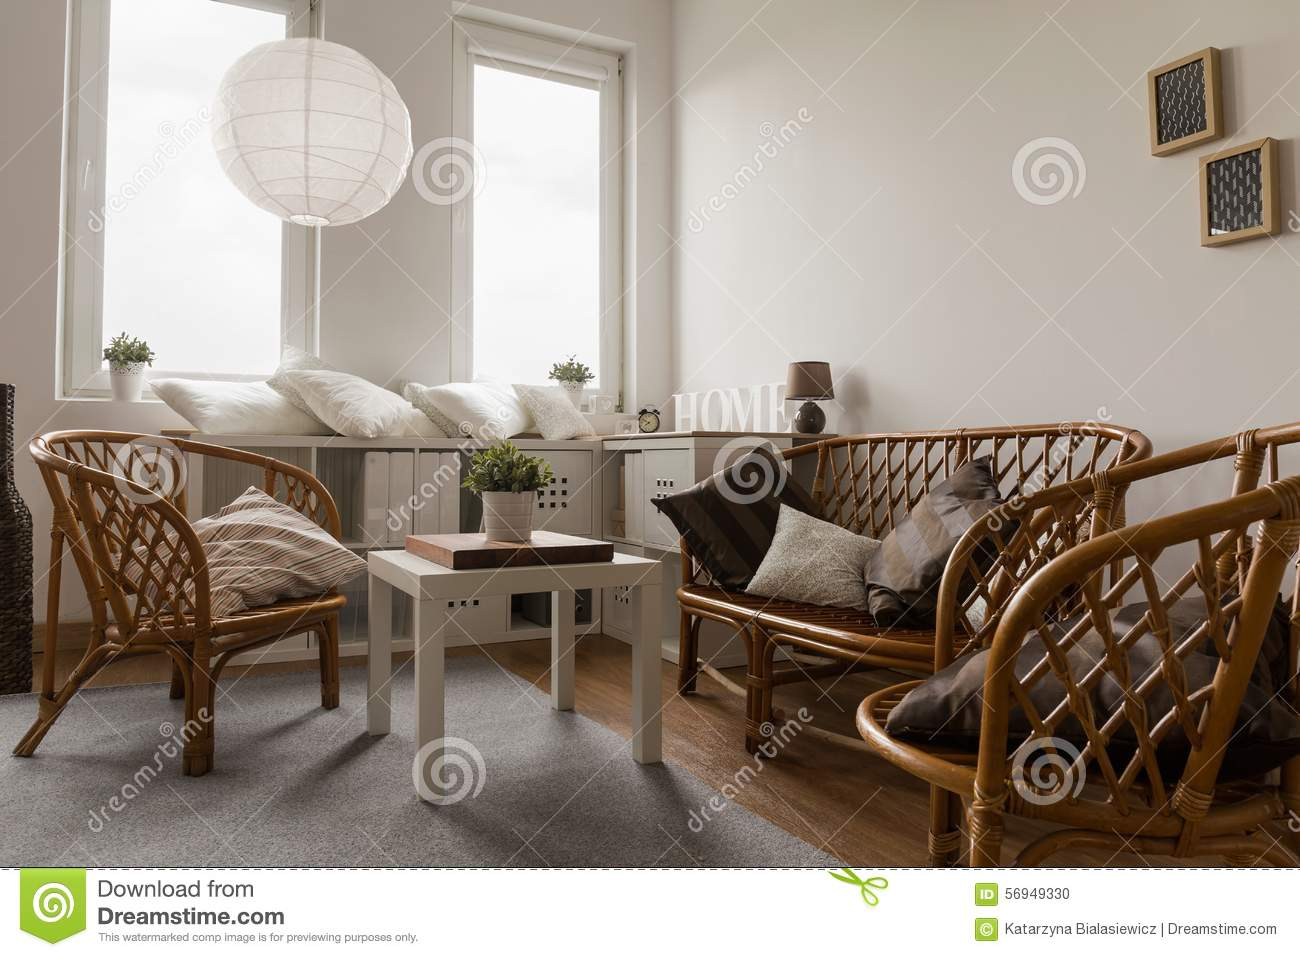 Meubles en osier dans le salon photo stock image 56949330 - Salon osier ...